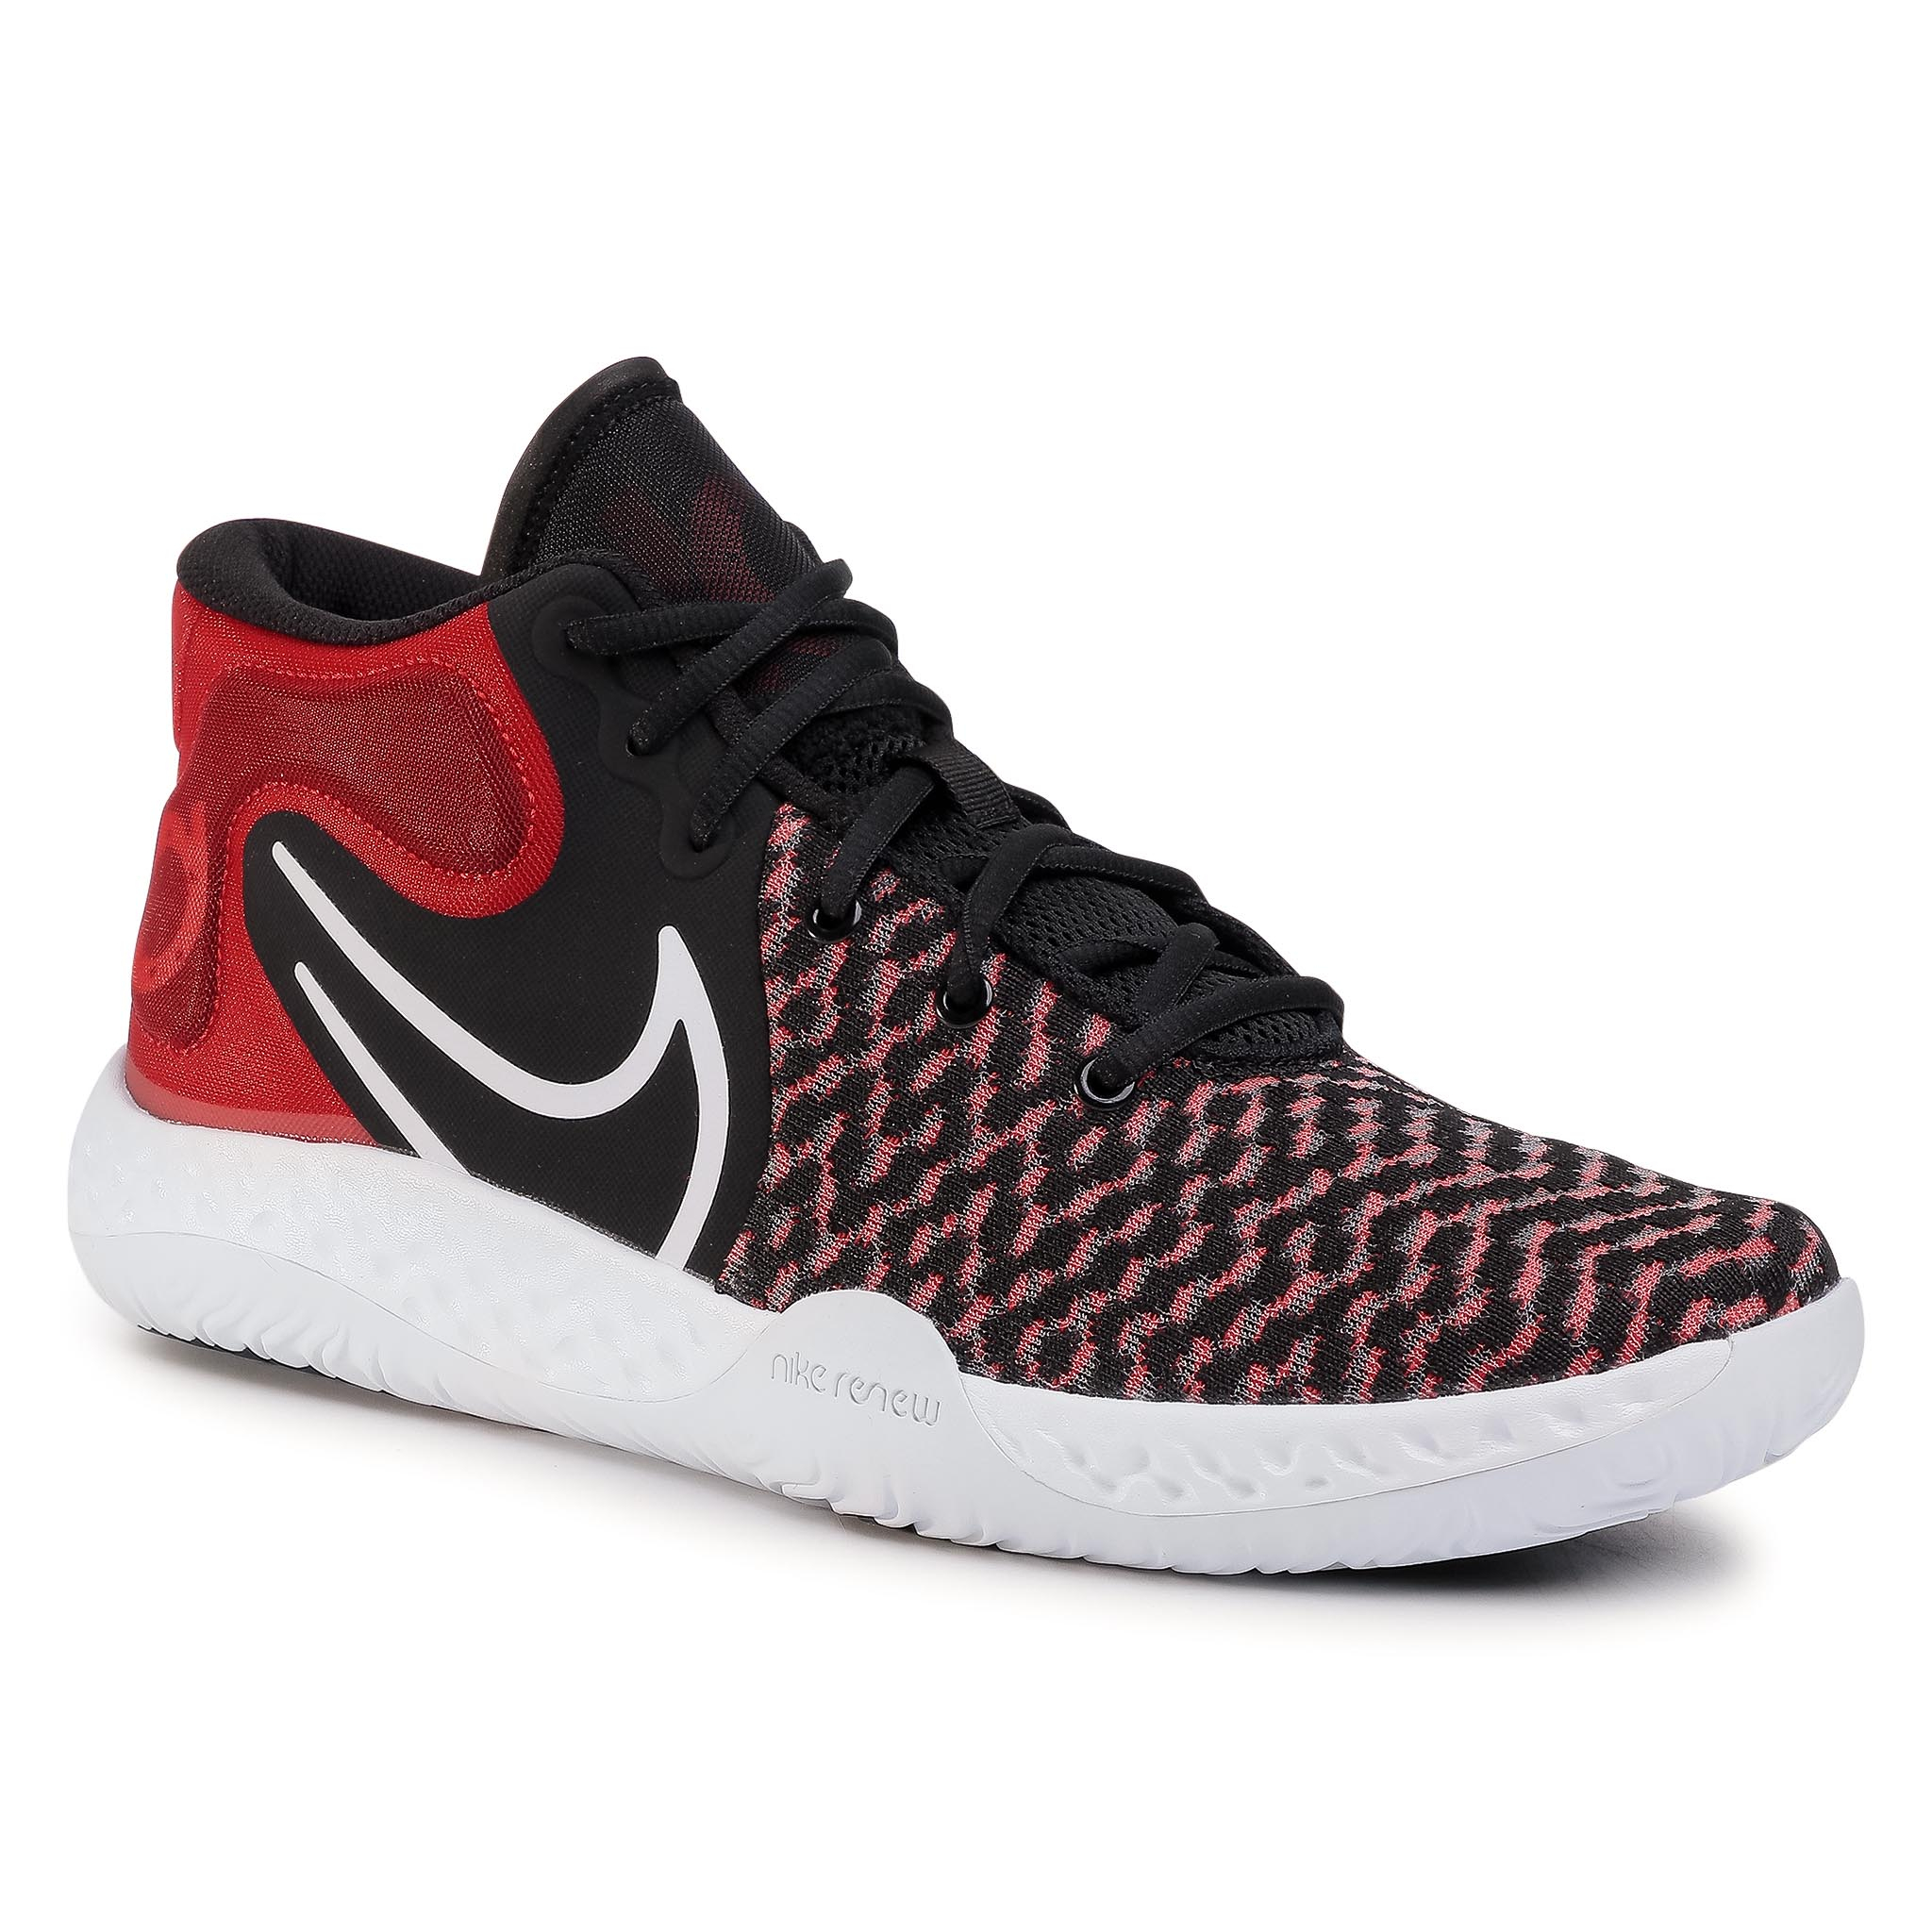 Pantofi Nike - Kd Trey 5 Viii Ck2090 002 Black/White/University Red imagine